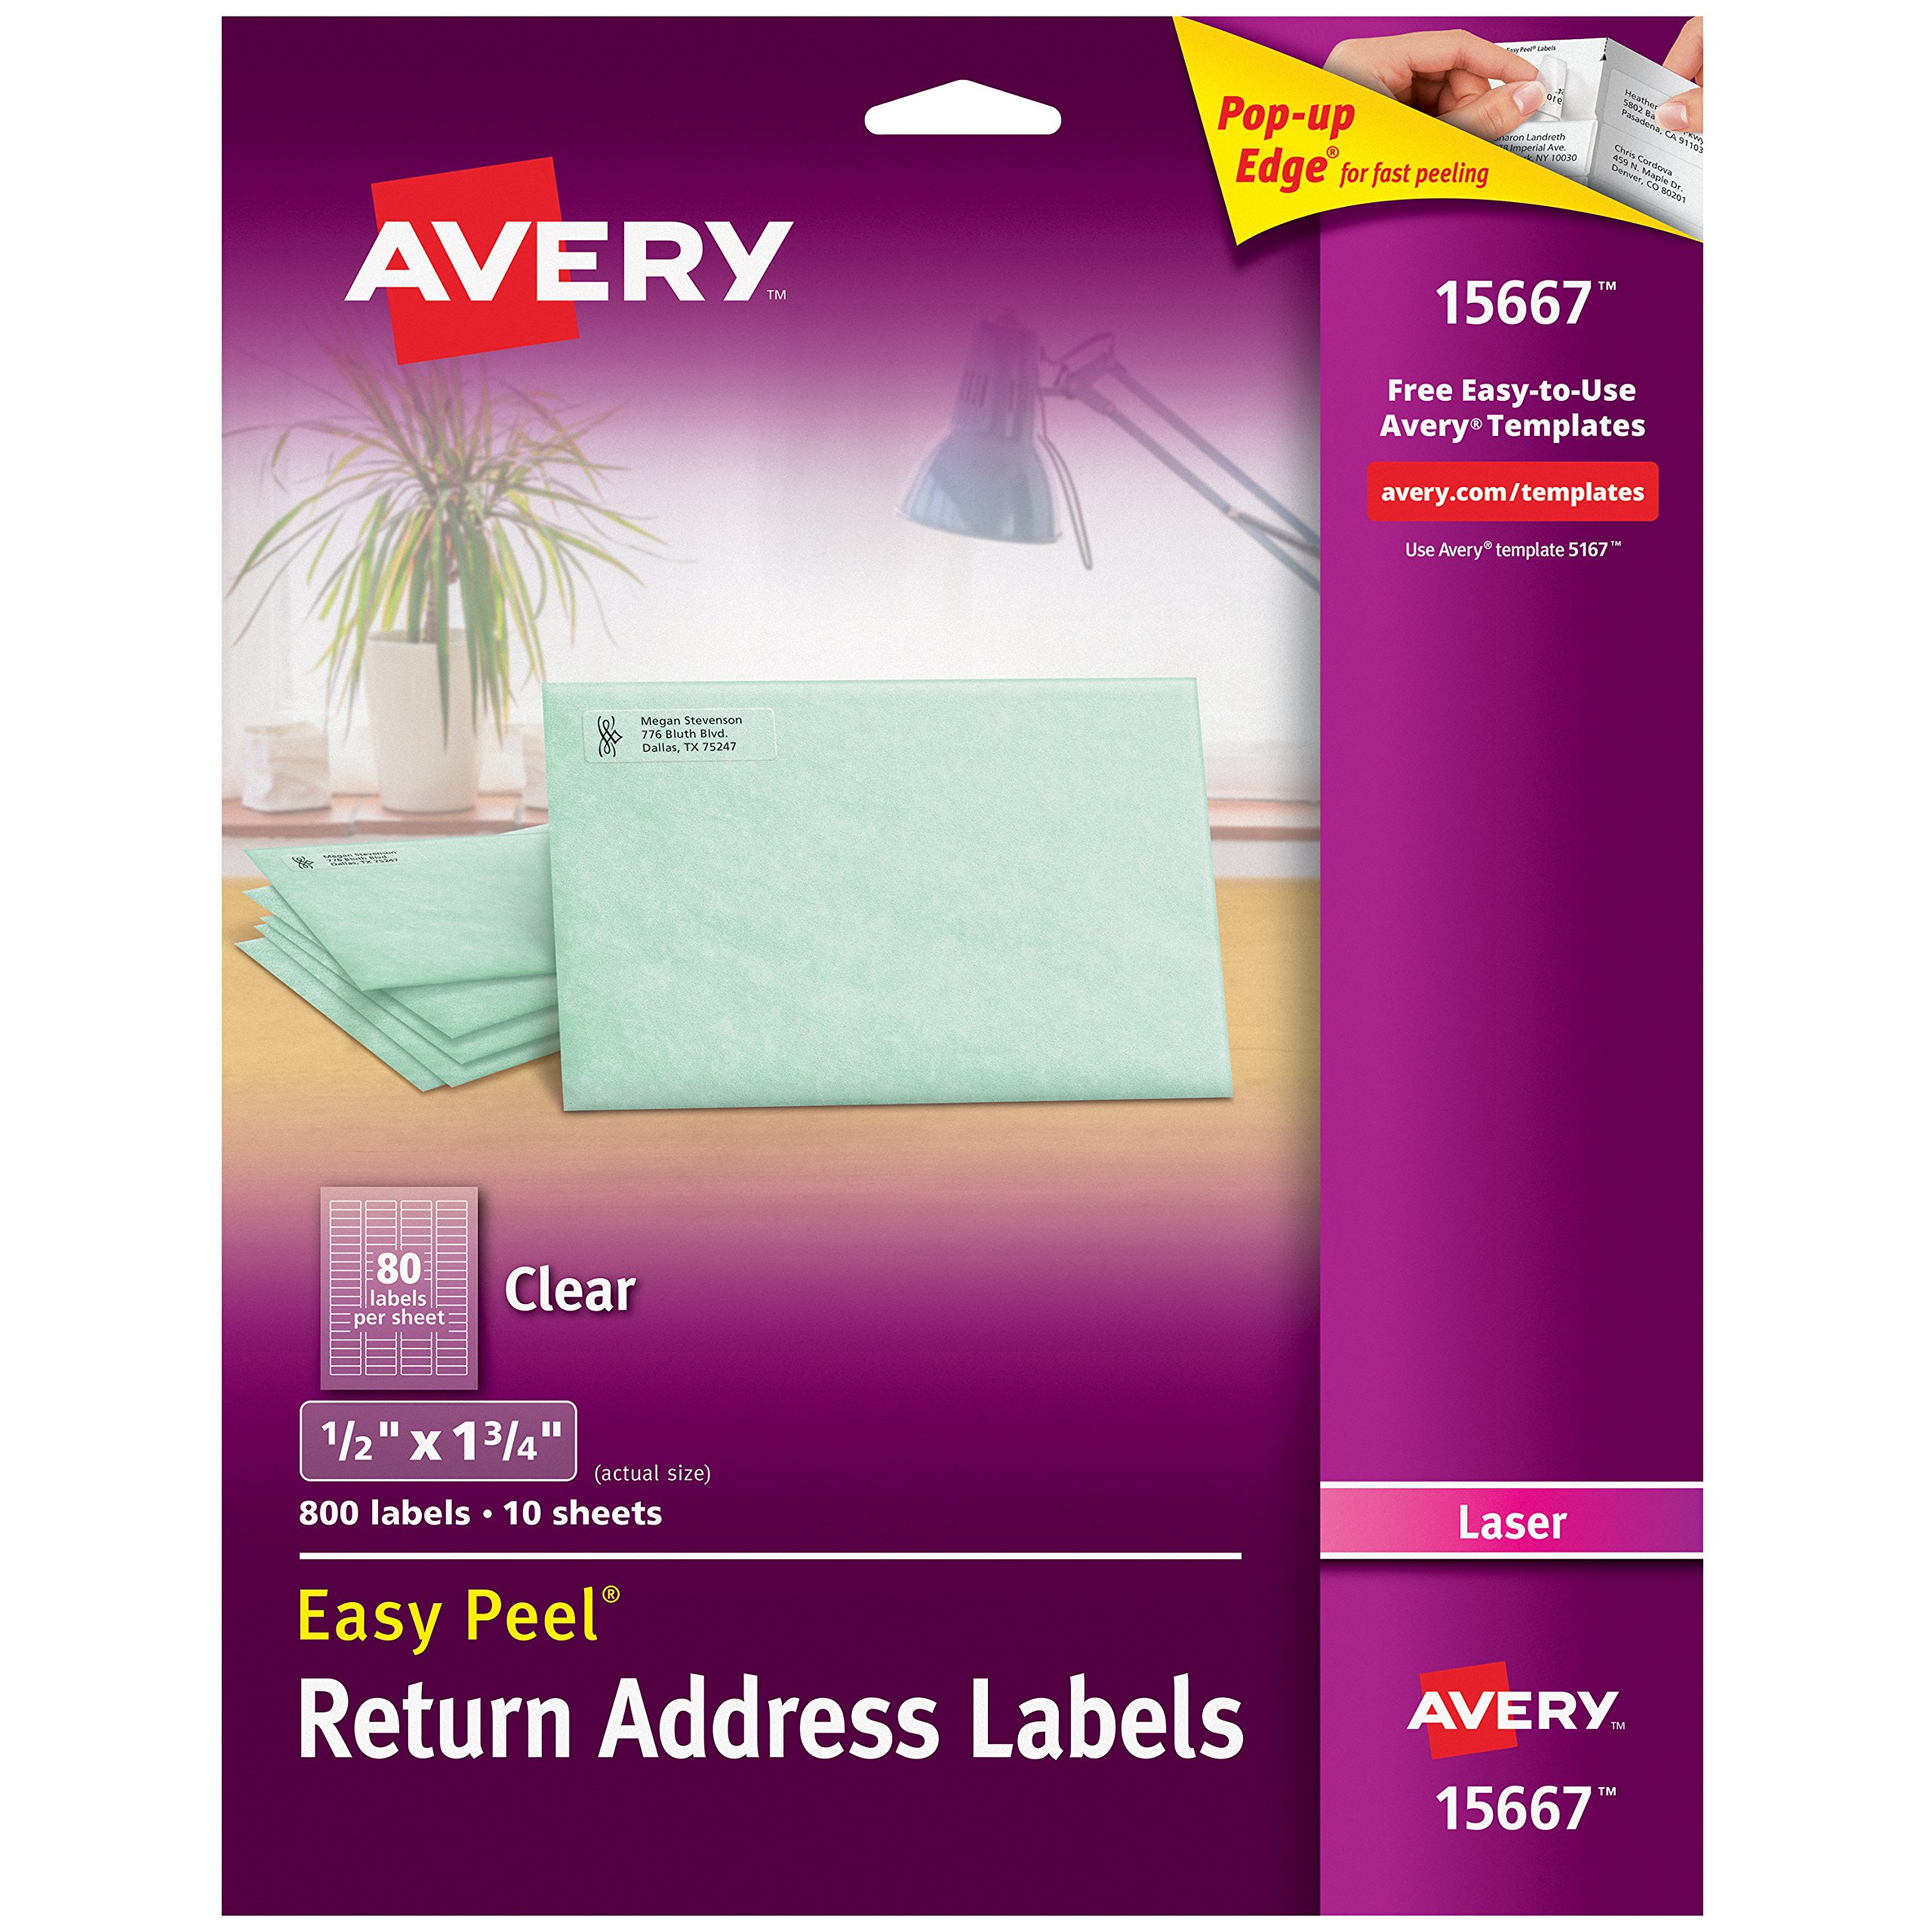 Avery Matte Frosted Clear Return Address Labels for Laser Printers, 1/2'' x 1-3/4'', 800 Labels (15667)